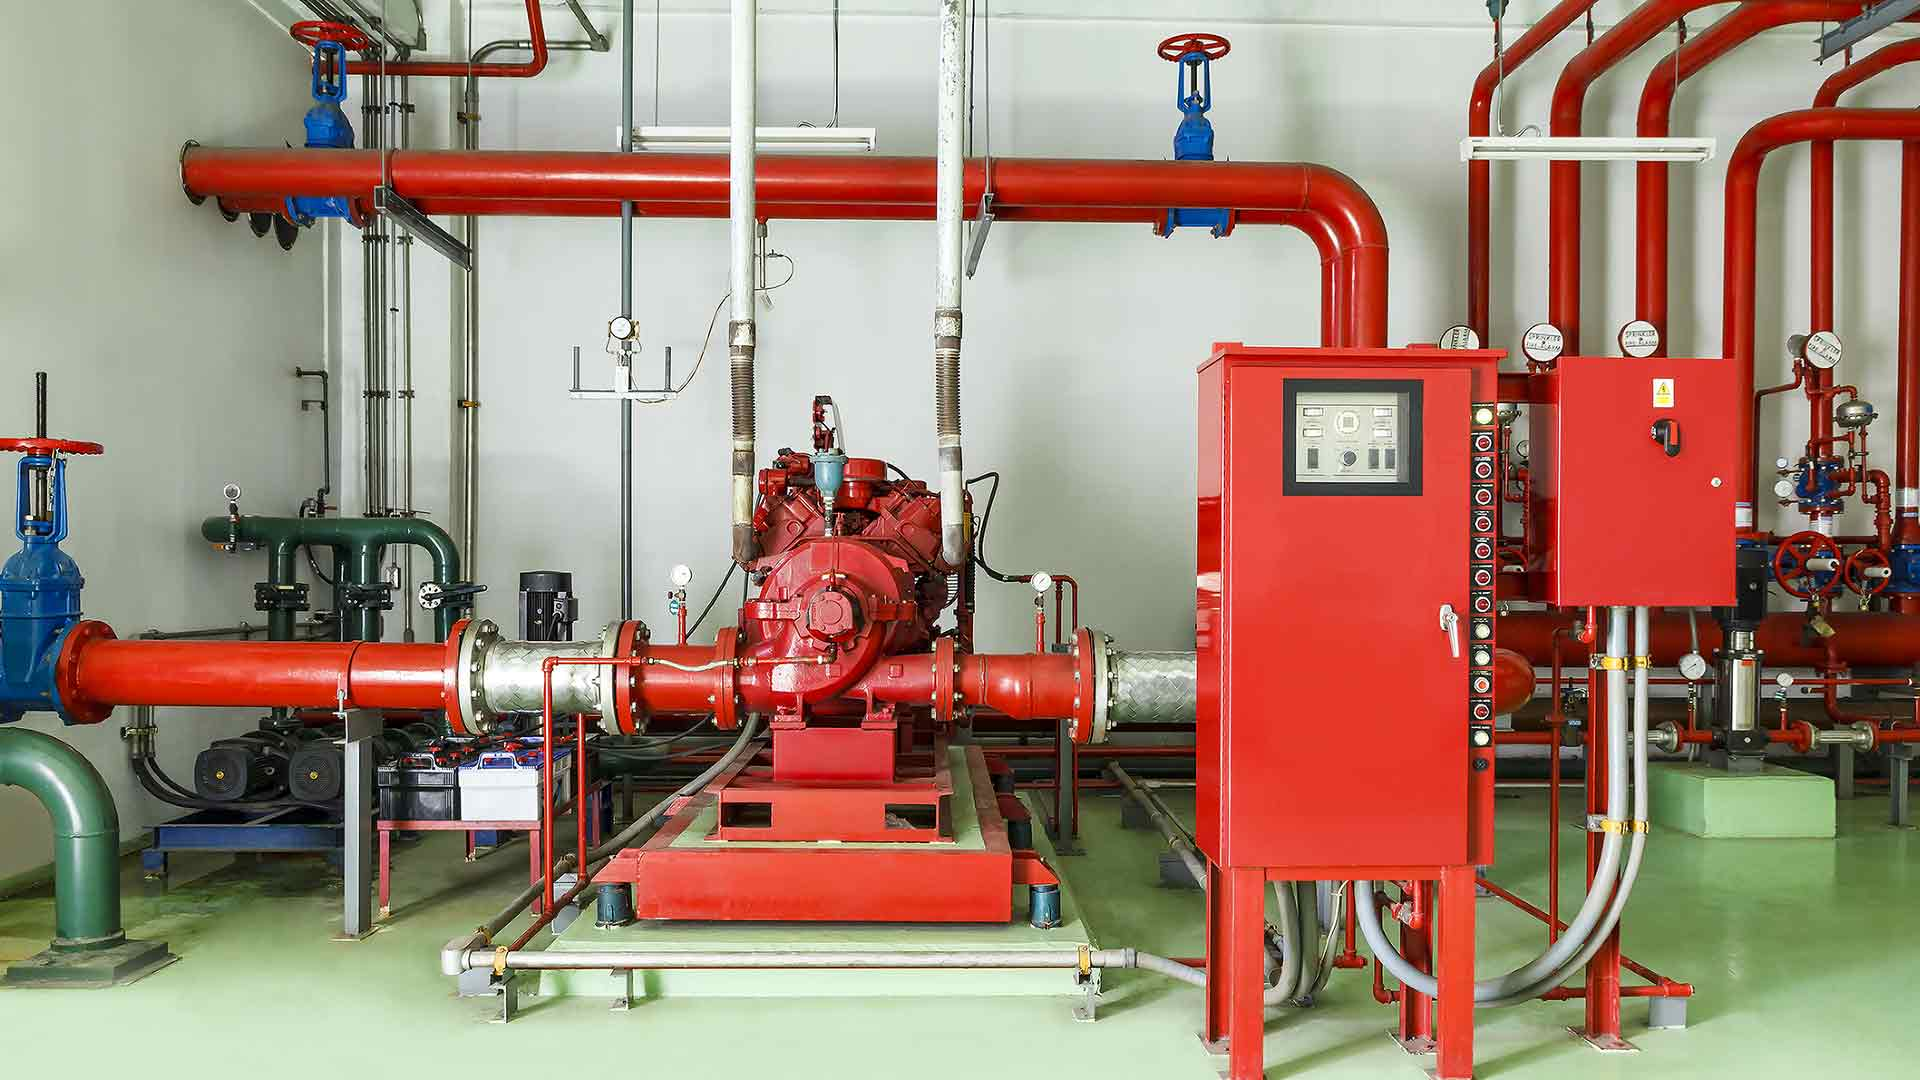 Global Fire Pump Market growth by 2026 involving prominent players